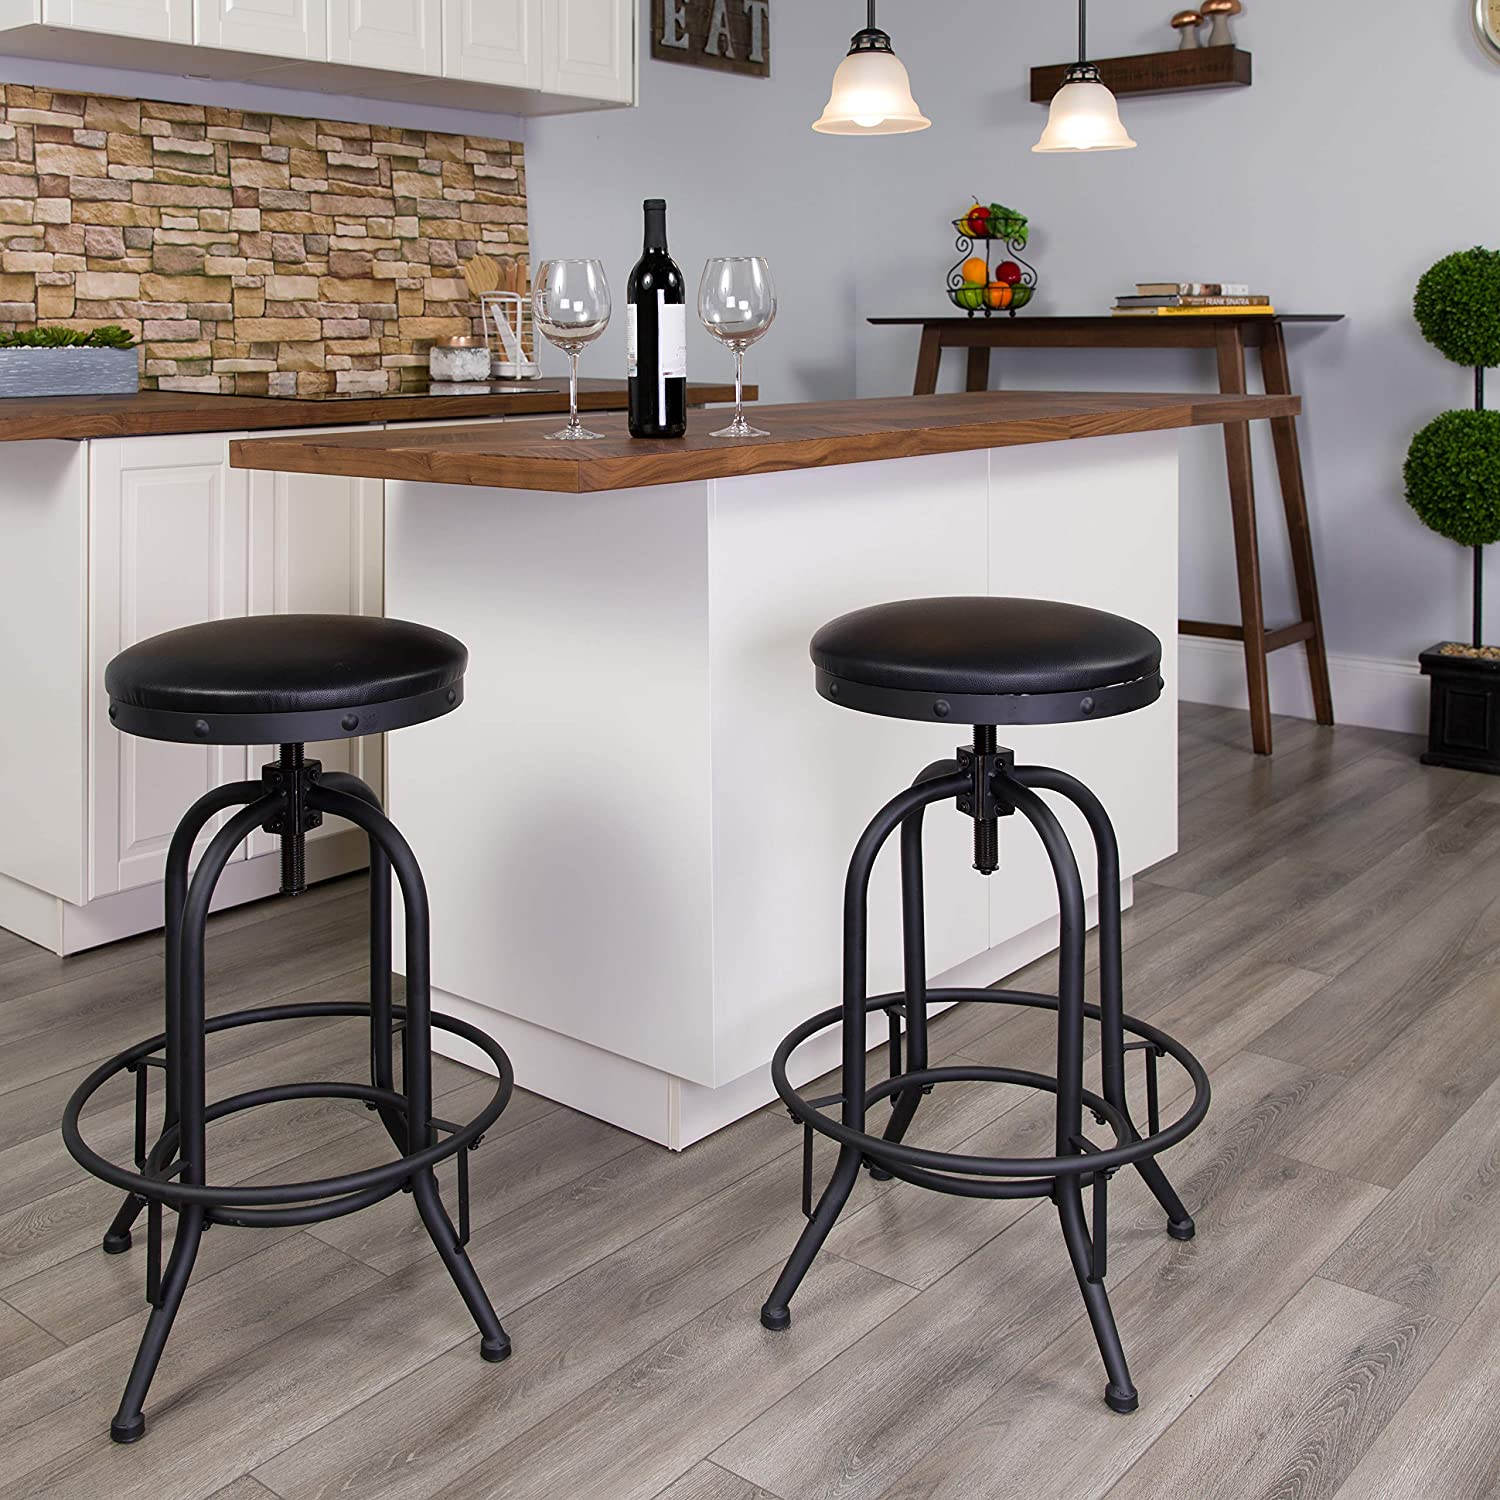 Max 88% OFF Flash Furniture 30'' Barstool with LeatherSoft Lift Black Swivel El Paso Mall